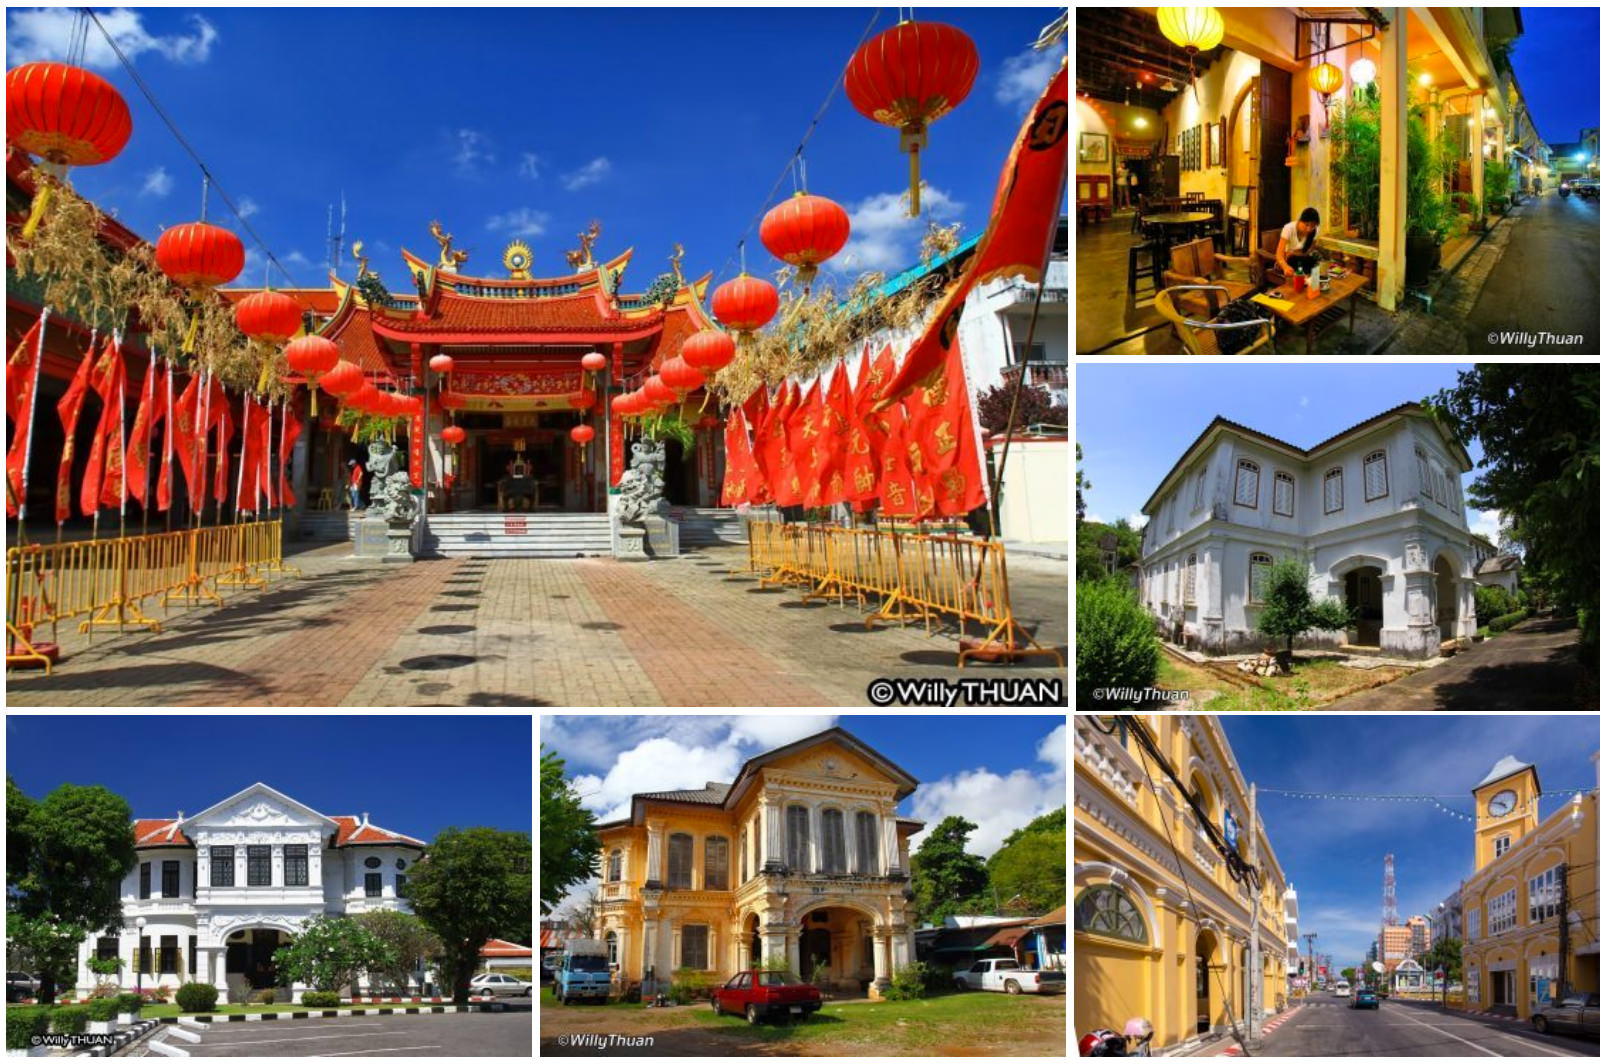 Photos of Phuket Town